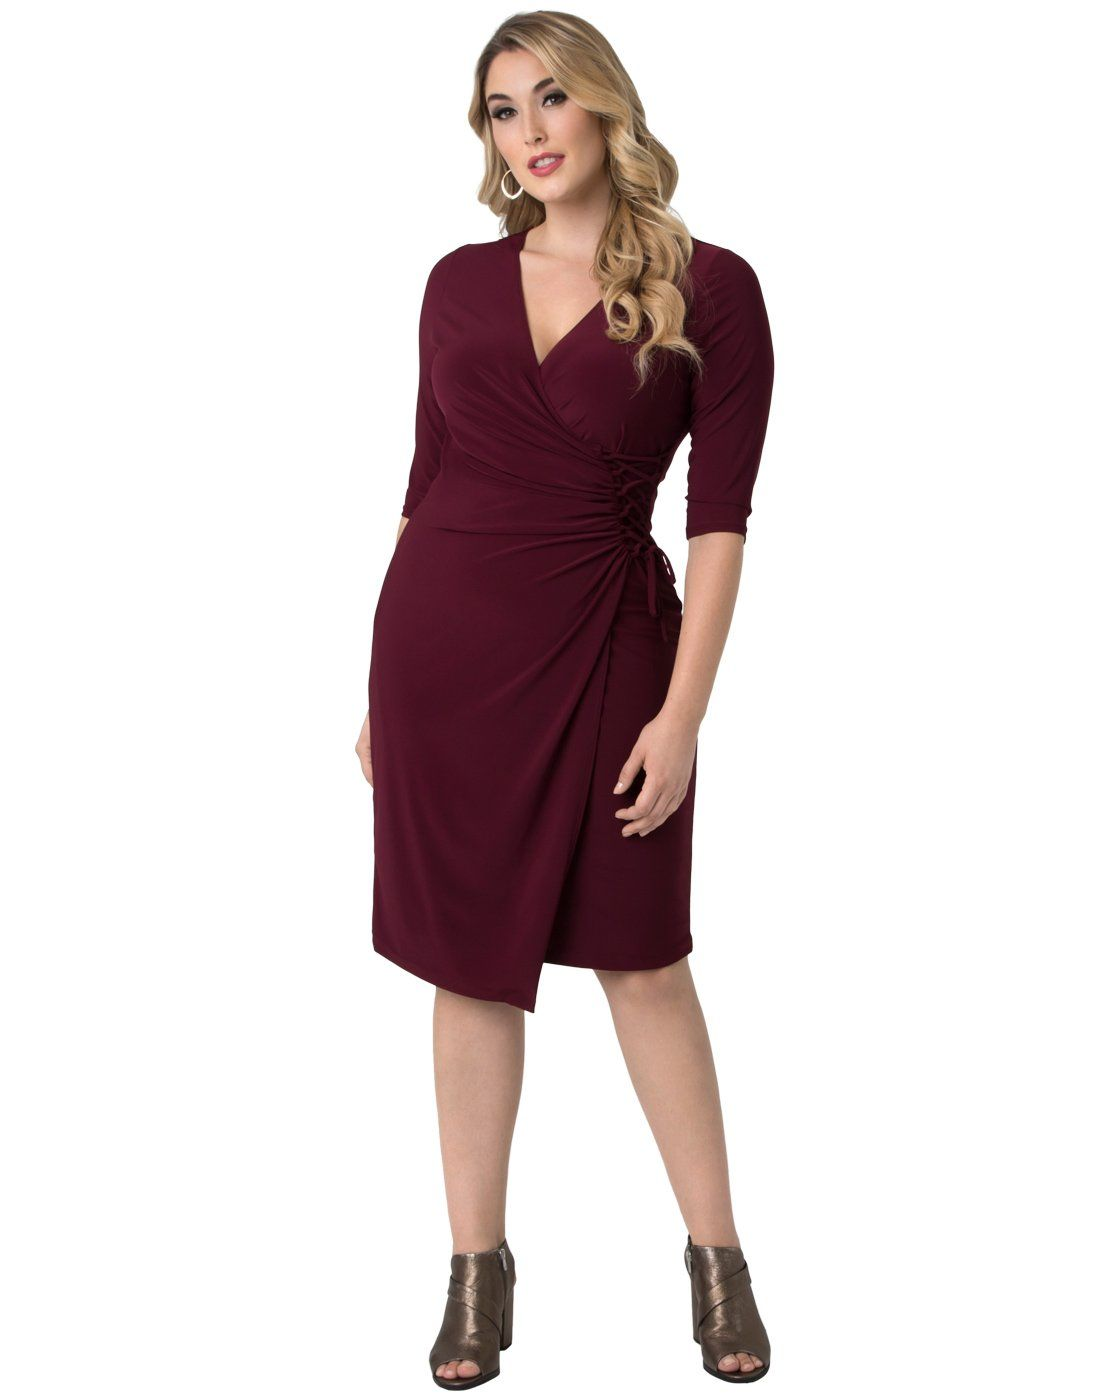 8429e7deae0 Kiyonna Womens Plus Size Vixen Cocktail Dress 1X Pinot Noir     Want to  know more